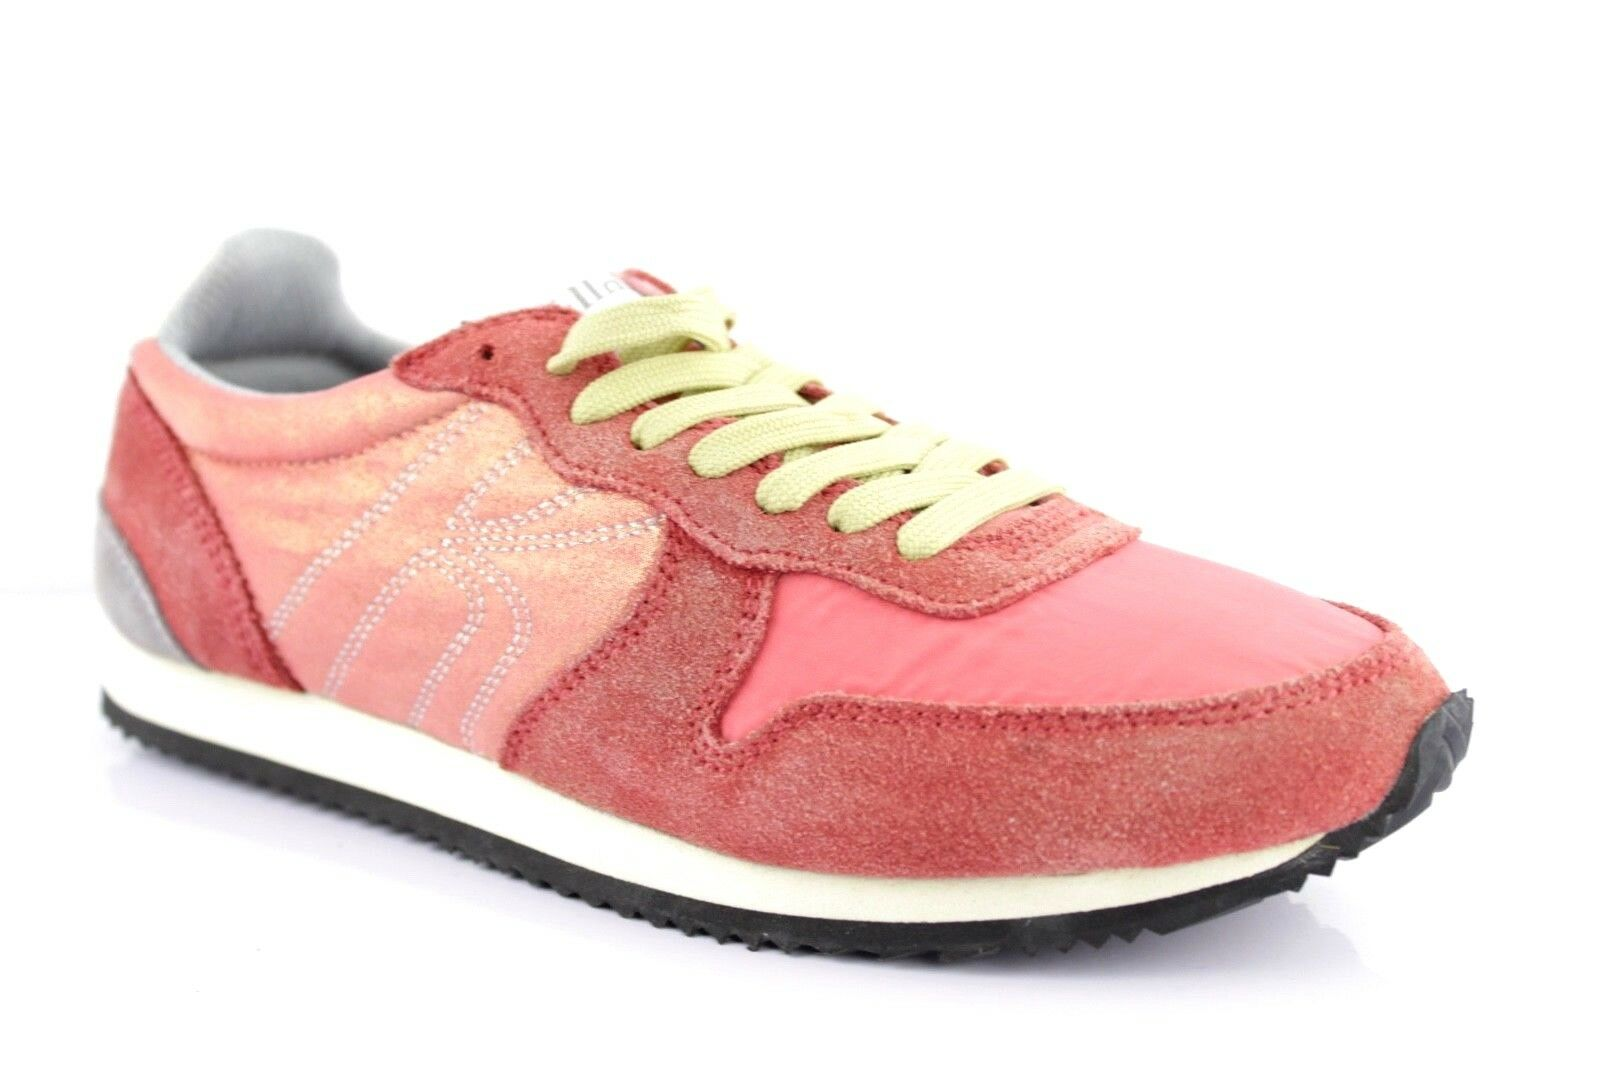 Miss Sixty Women's Sneakers Low shoes Lace up Trainers Coral Leather